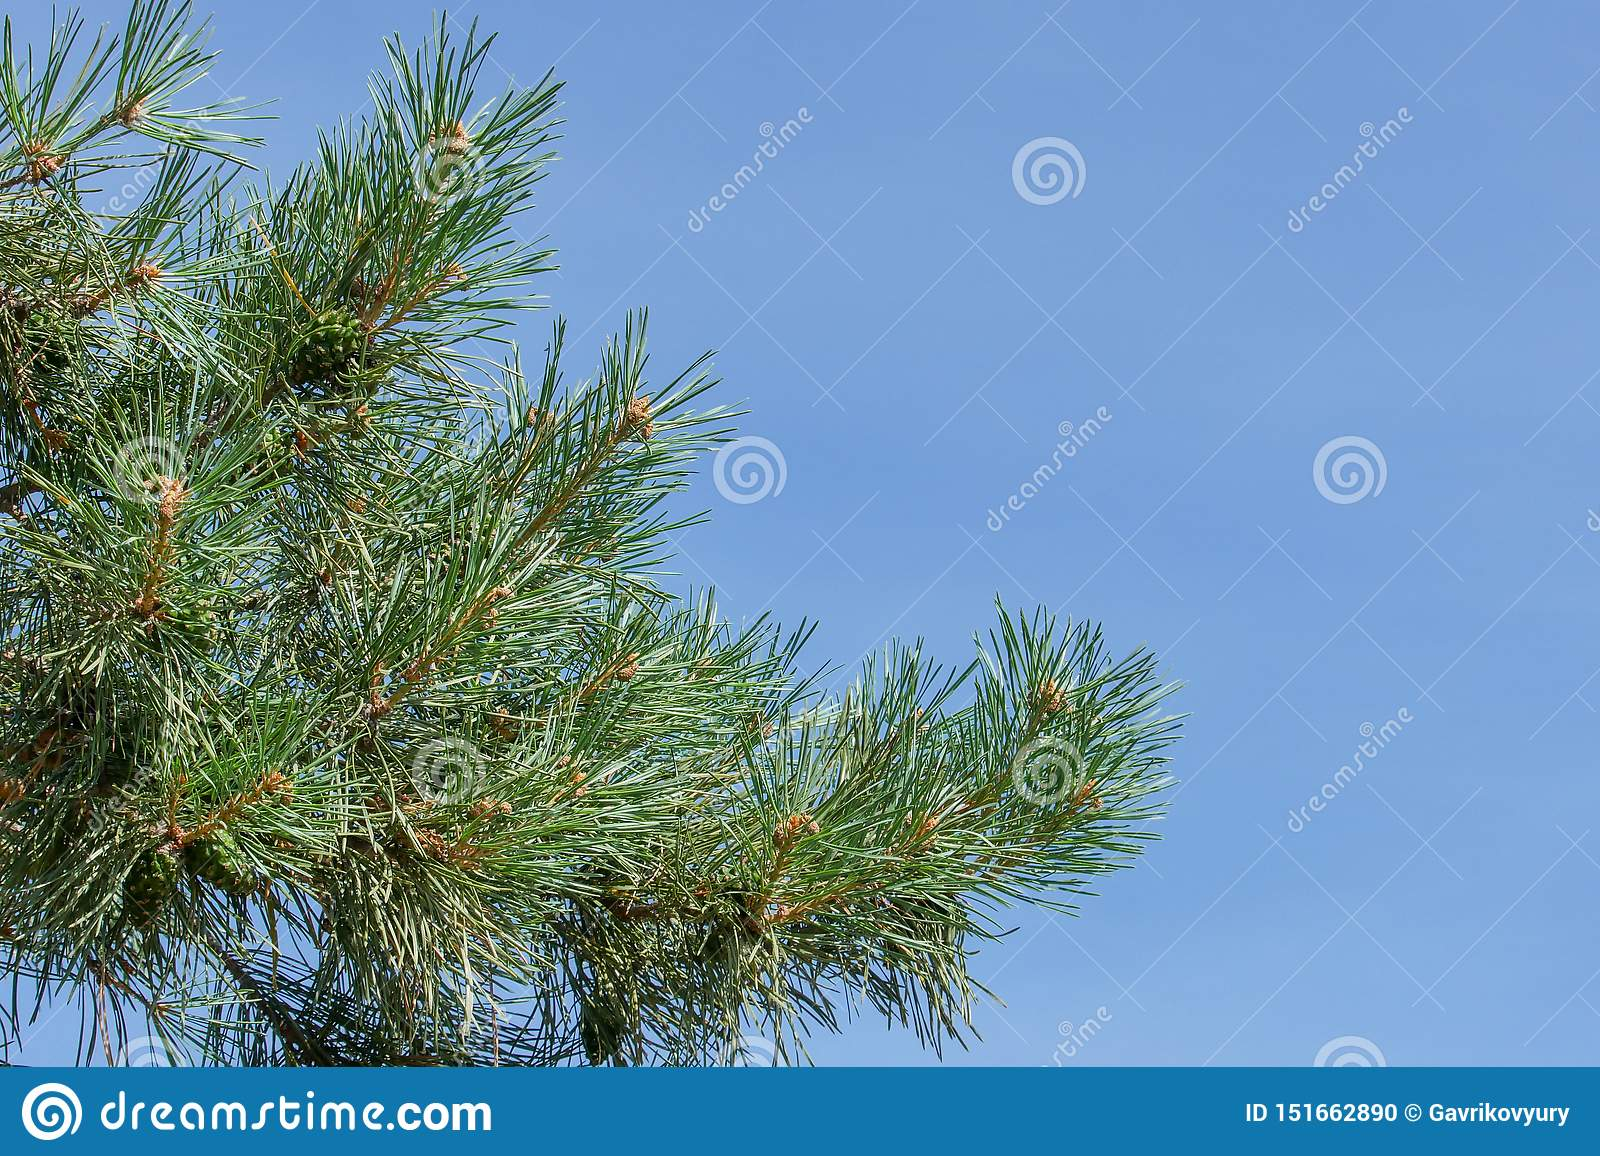 A pine branch with green cones against the blue sky in the park.